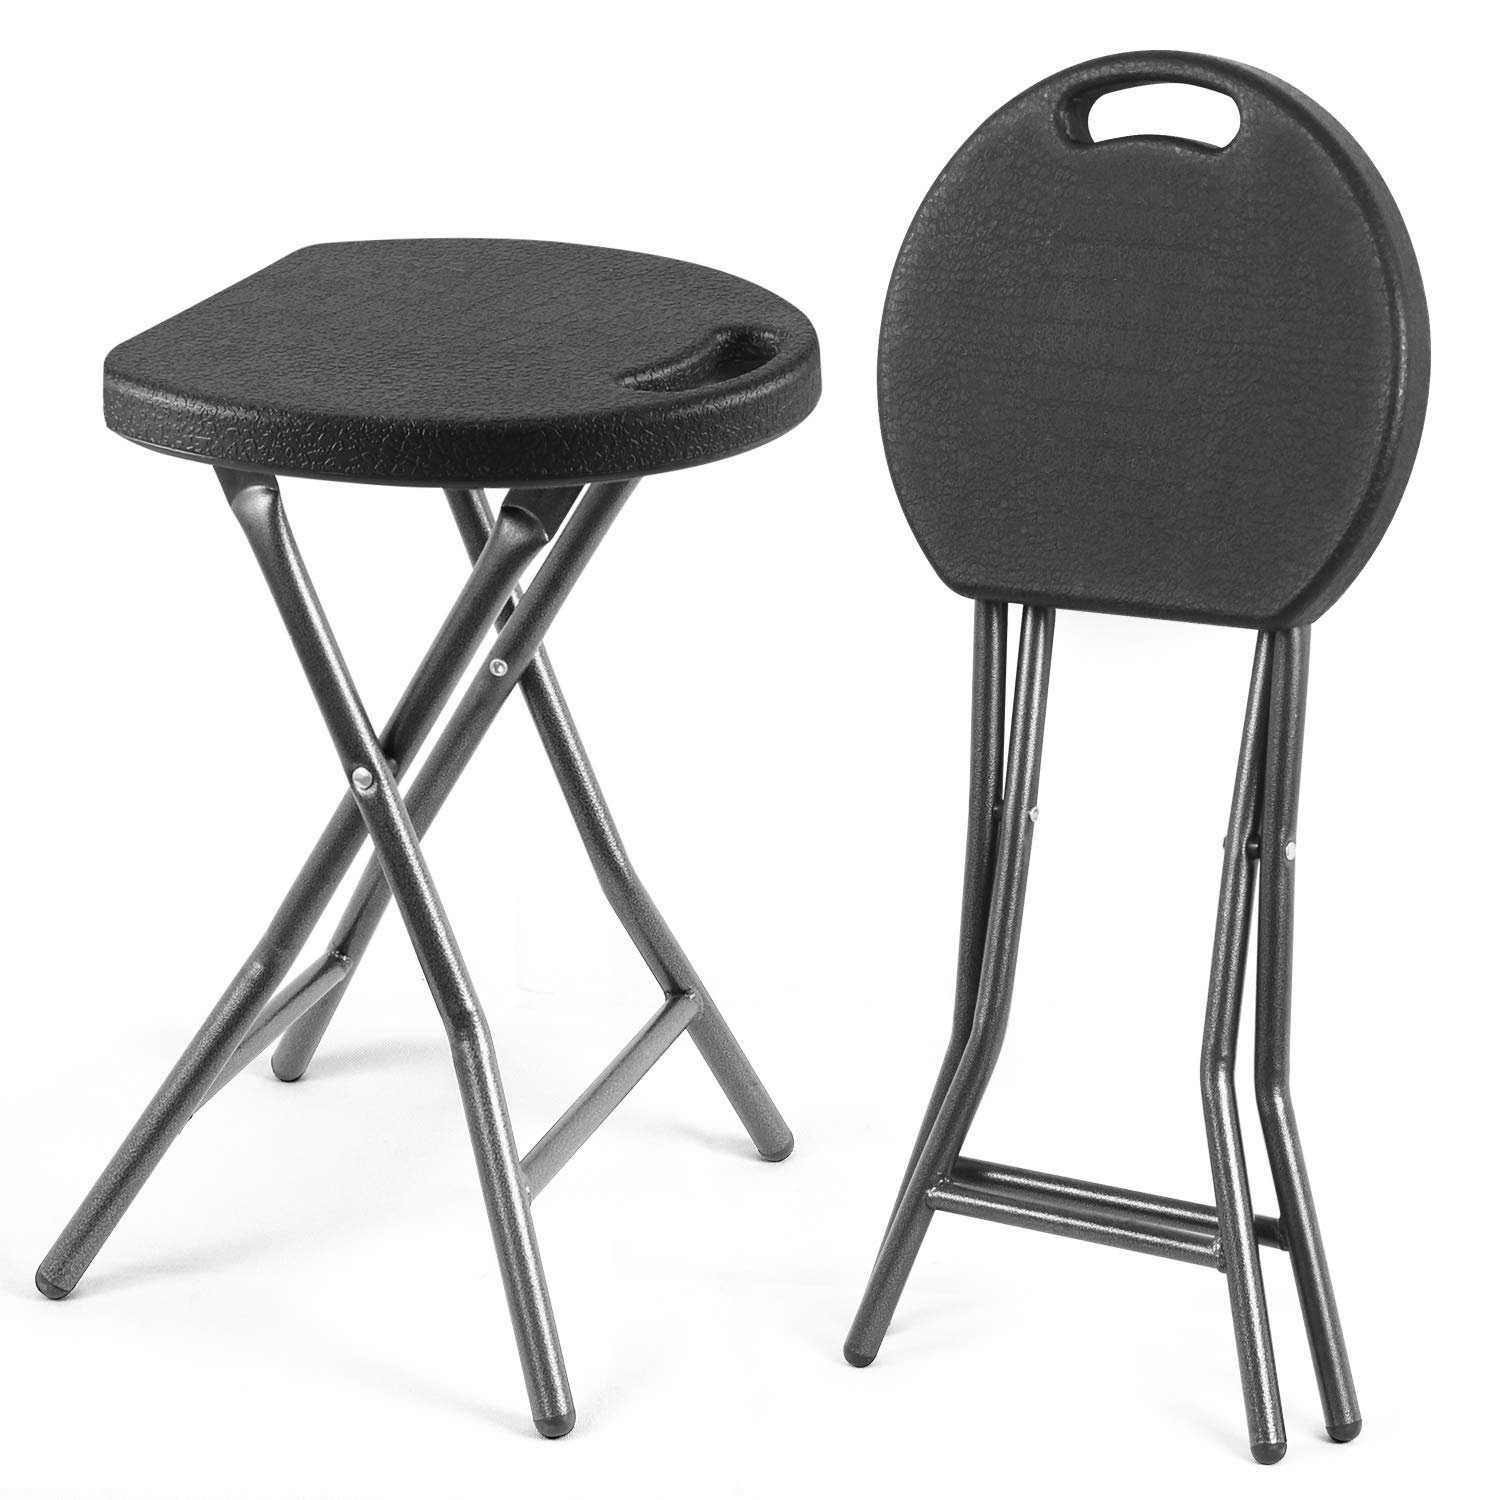 Rfiver Portable Folding Stools 18.1-Inch with Handle and 300 Pound Capacity Heavy Duty for Indoor Outdoor, Lightweight Foldable Stool Chairs Collapsible Round Stools, Set of 2 in Black by Rfiver